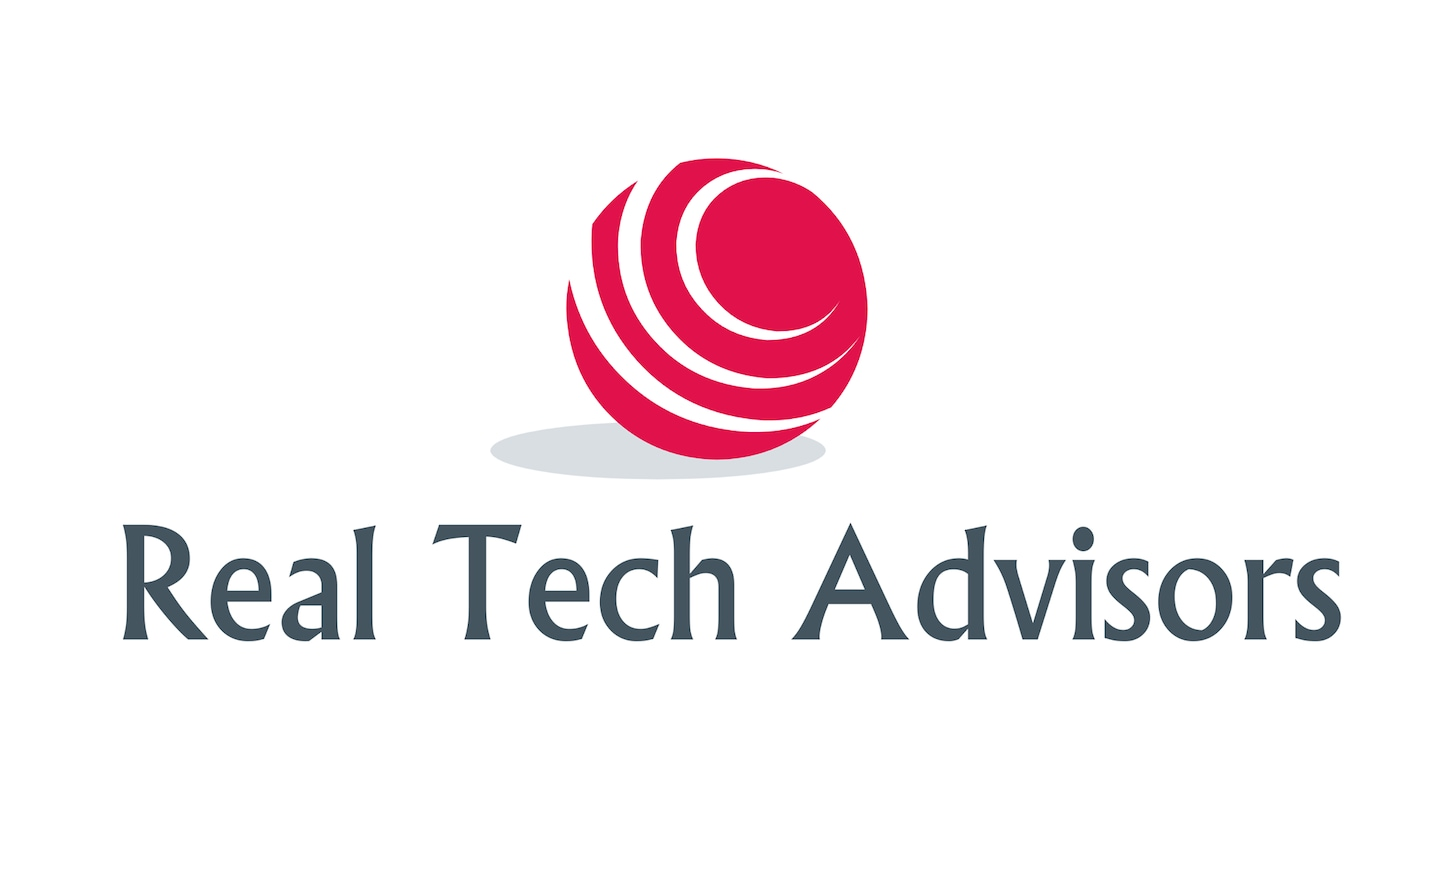 Real Tech Advisors